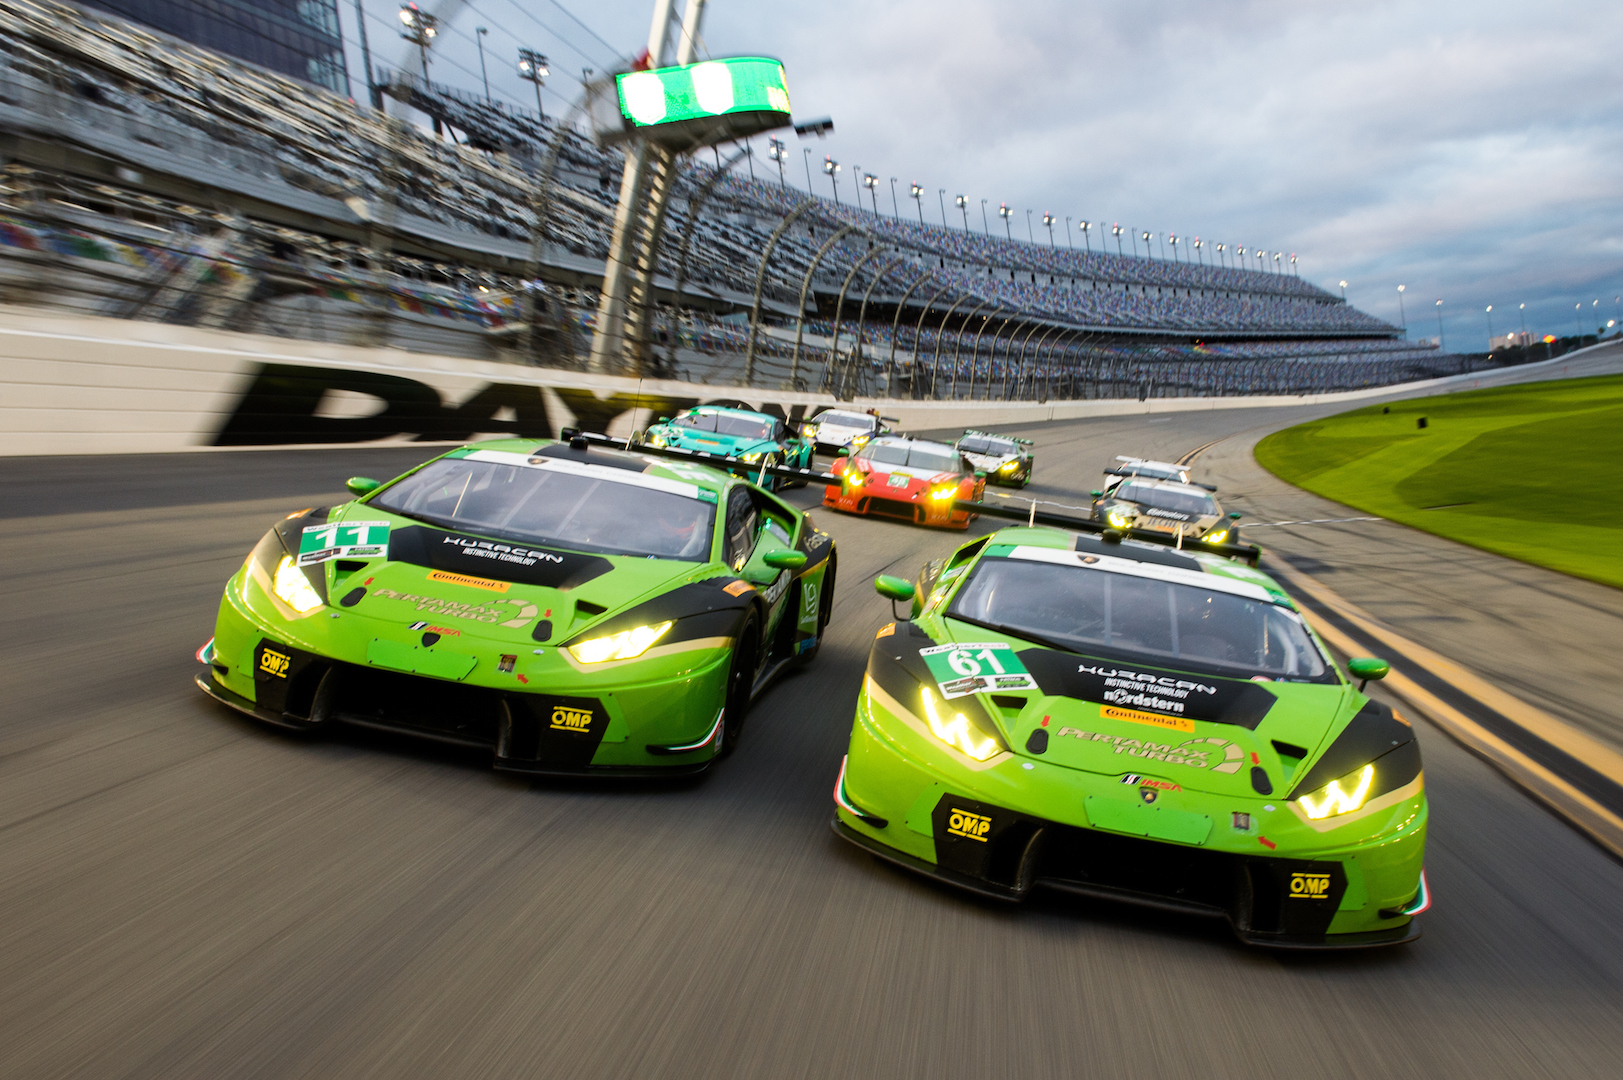 January 5-8, 2017: ROAR Before 24 Test. All 8 Lamborghini's on the Daytona banking during a filming session for Lamborghini. GRT Grasser Racing Team, Lamborghini Huracan GT3, Mirko Bortolotti, Christian Engelhart, Rolf Ineichen, Ezequiel Perez Companc and GRT Grasser Racing Team, Lamborghini Huracan GT3, Christian Engelhart, Rolf Ineichen, Christopher Lenz leading the pack